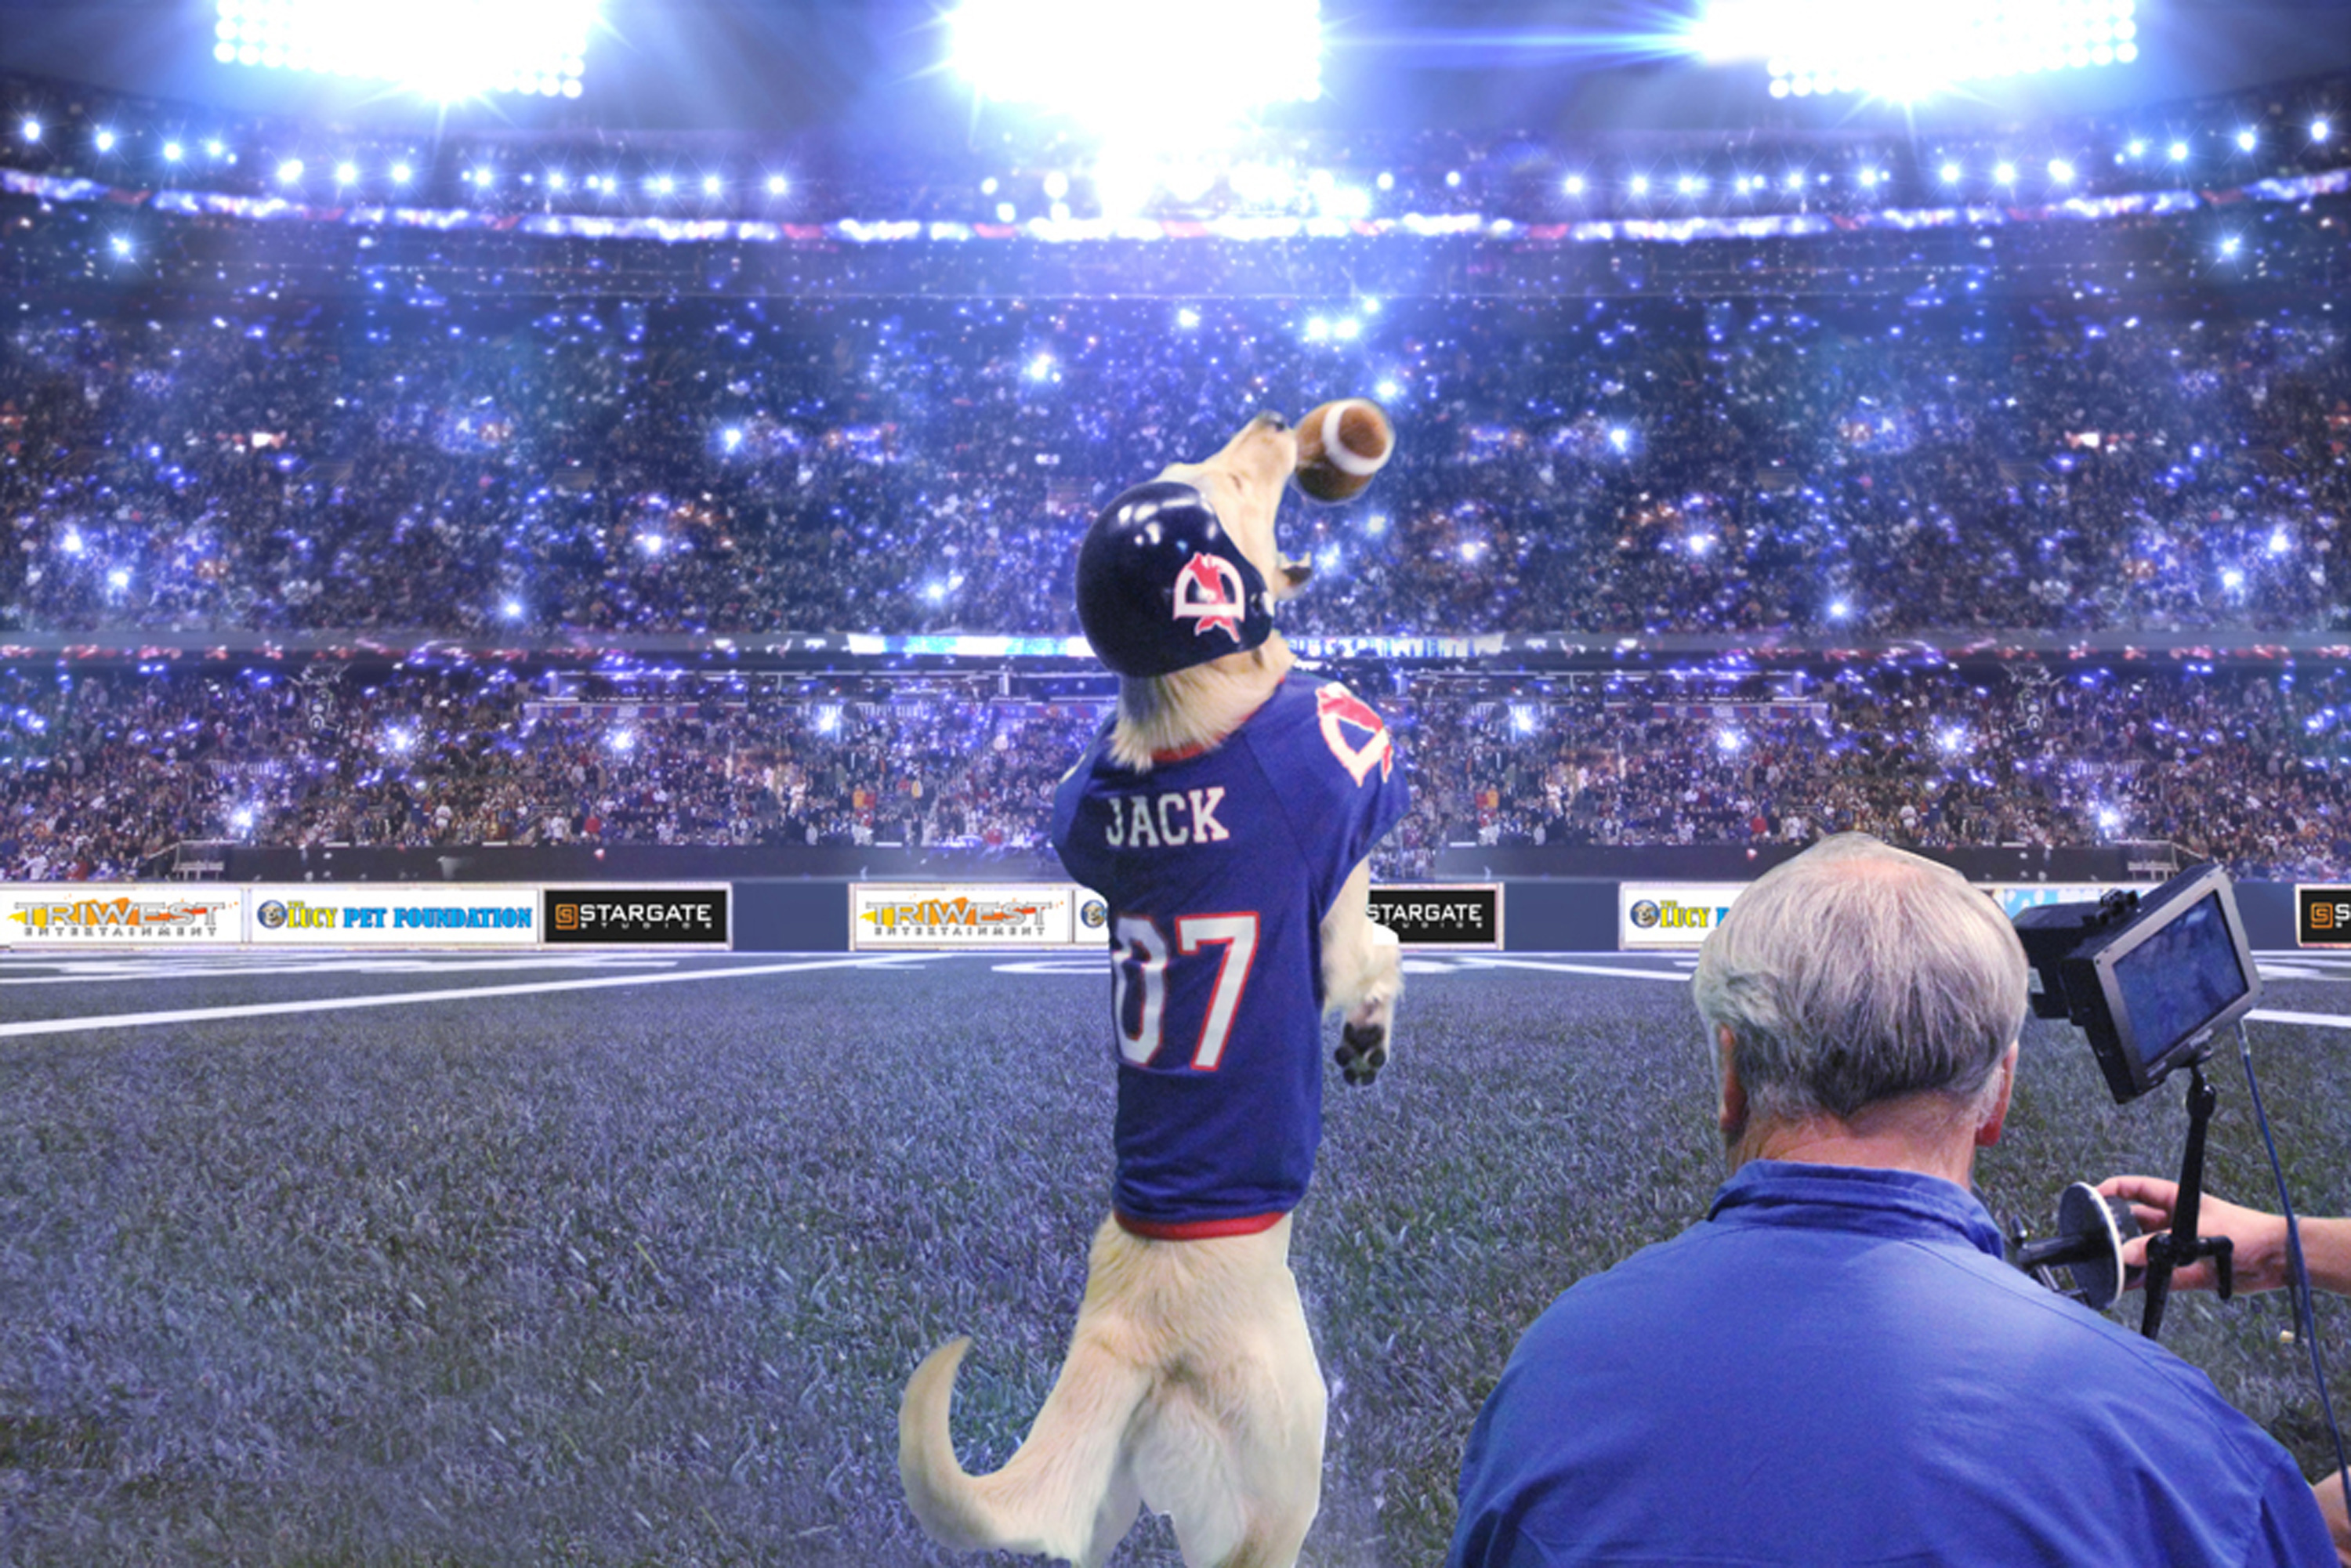 """In this image produced on Nov. 19, 2014, provided by the Lucy Foundation, cinematographer Sam Nicholson records quarterback Jack the dog in a scene in a fanciful Cats vs. Dogs football game scheduled to appear on Super Bowl Sunday, Feb. 1, 2015. It won't be part of the game broadcast but will be an alternative show dubbed the """"Kitten Bowl"""" on the Hallmark Channel, three hours before the Super Bowl game on NBC. (AP Photo/Lucy Foundation, Betsy Martin)"""